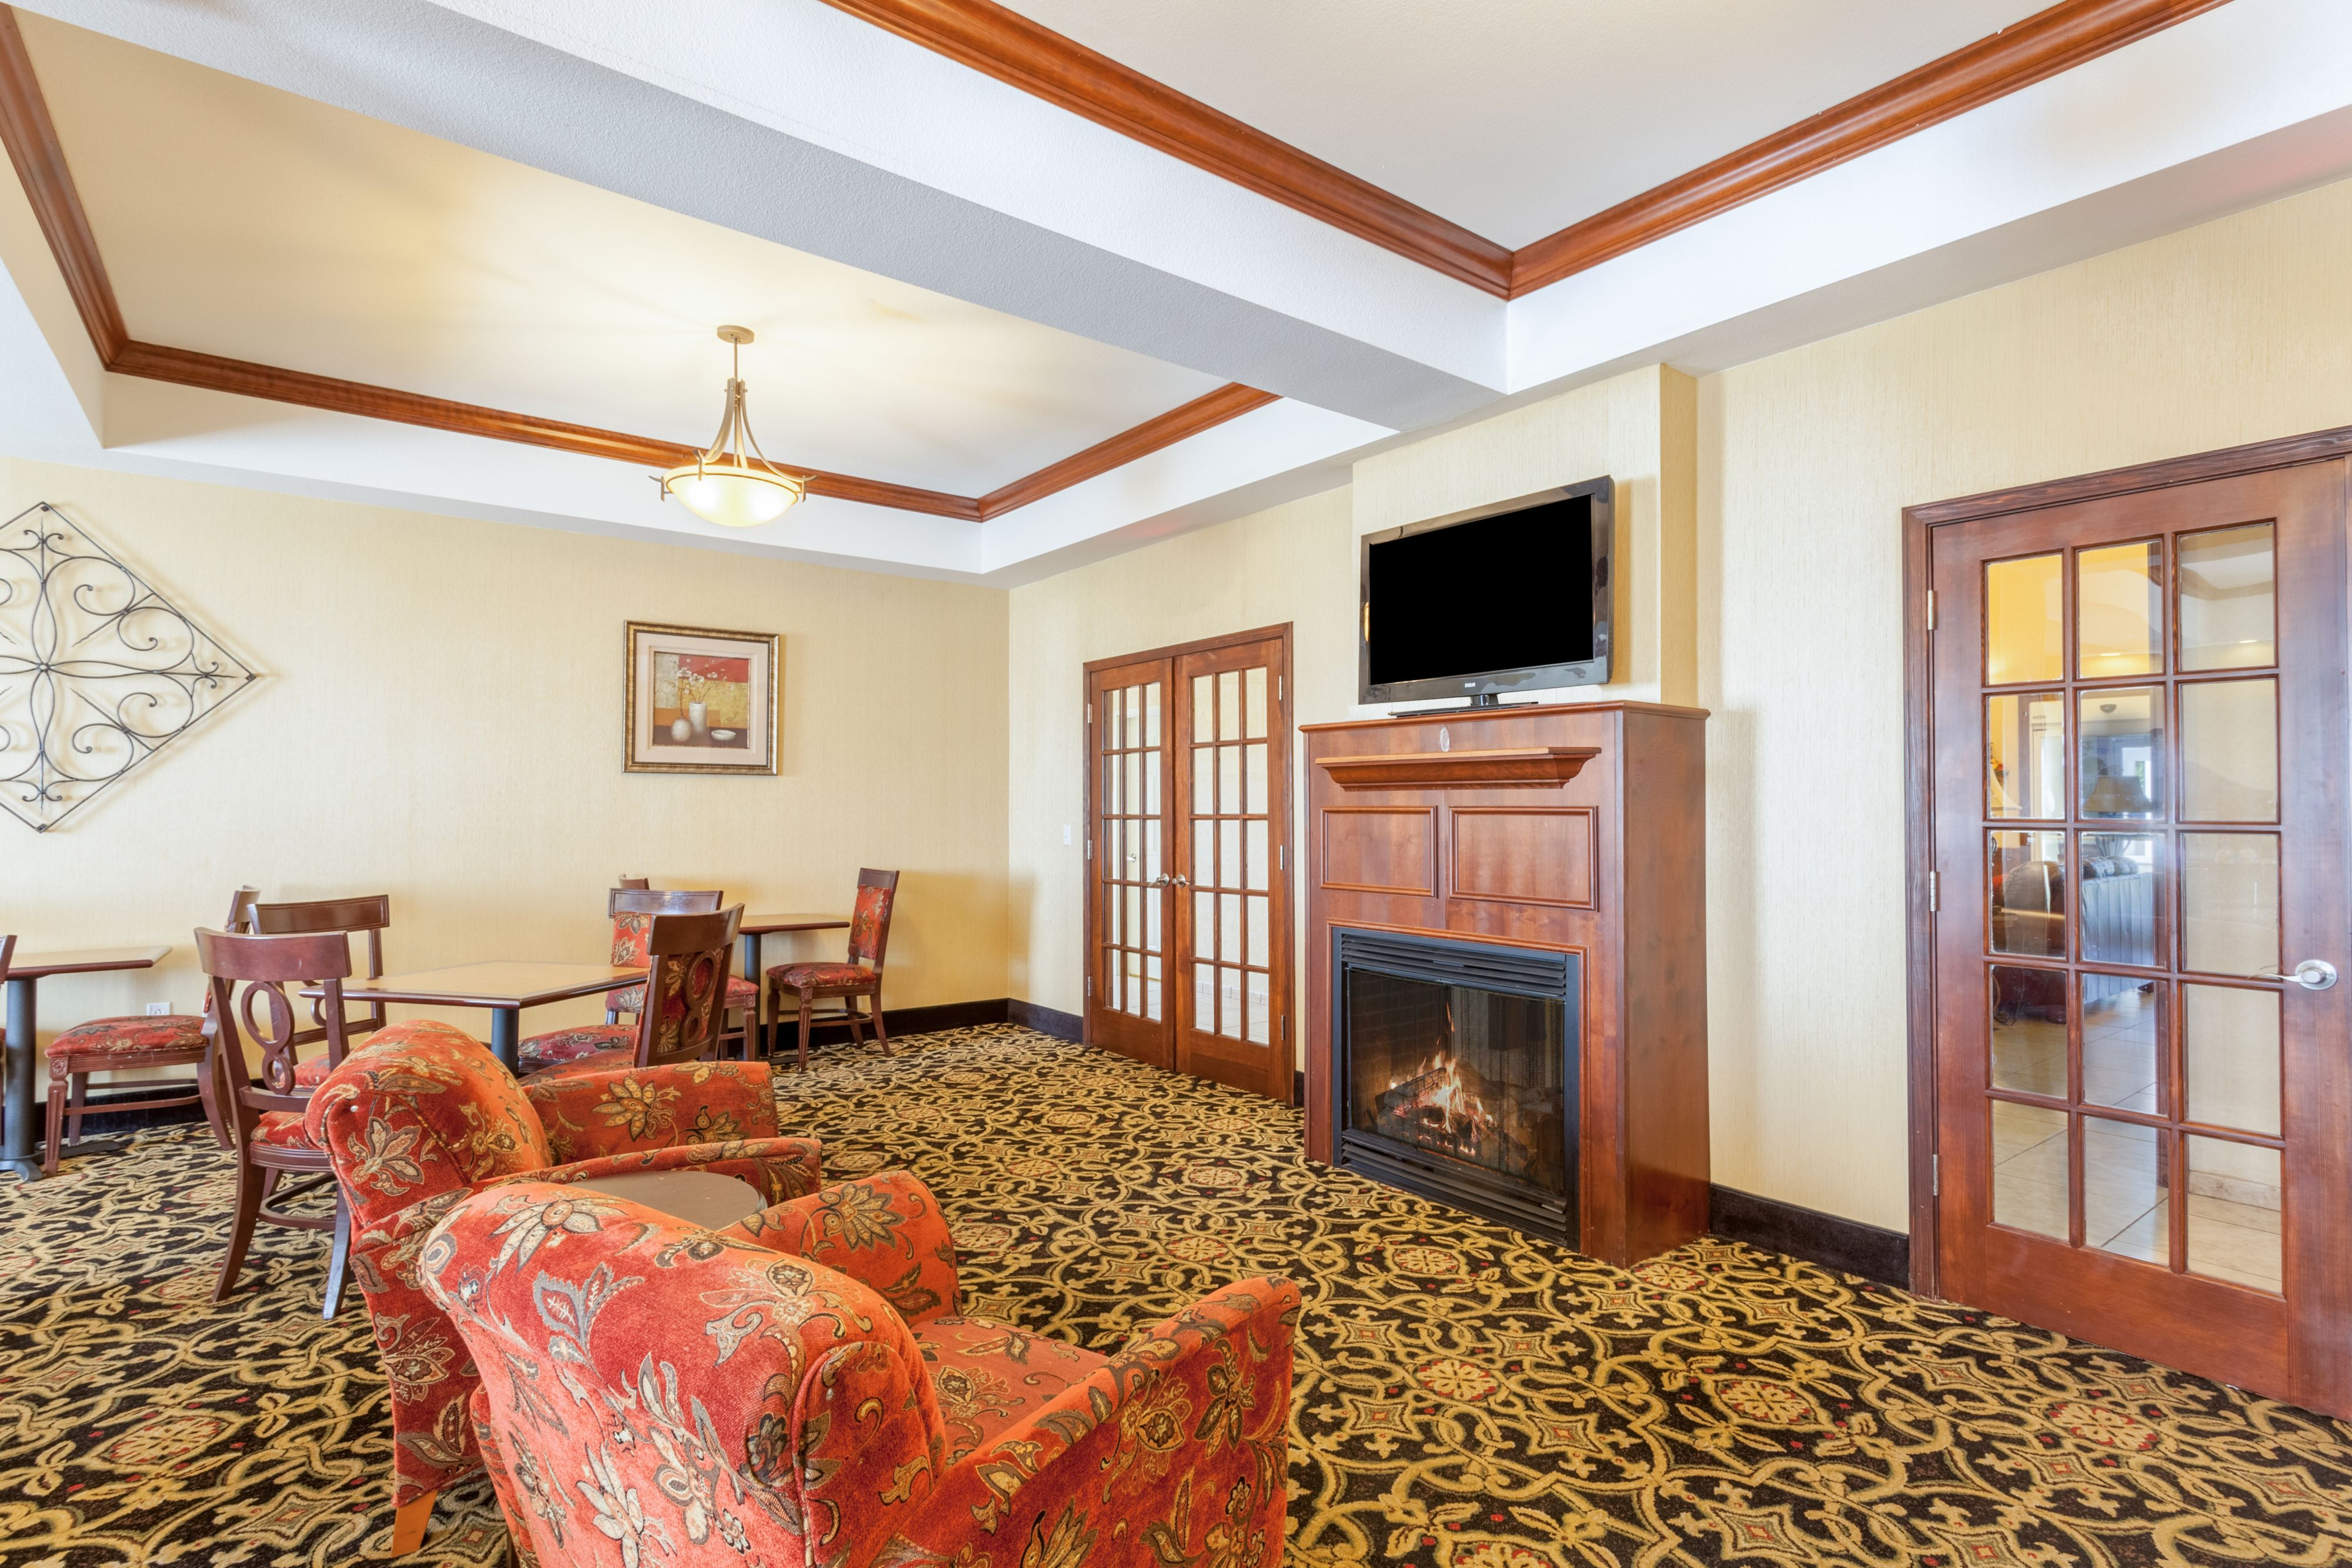 Holiday Inn Express & Suites Clarksville image 11